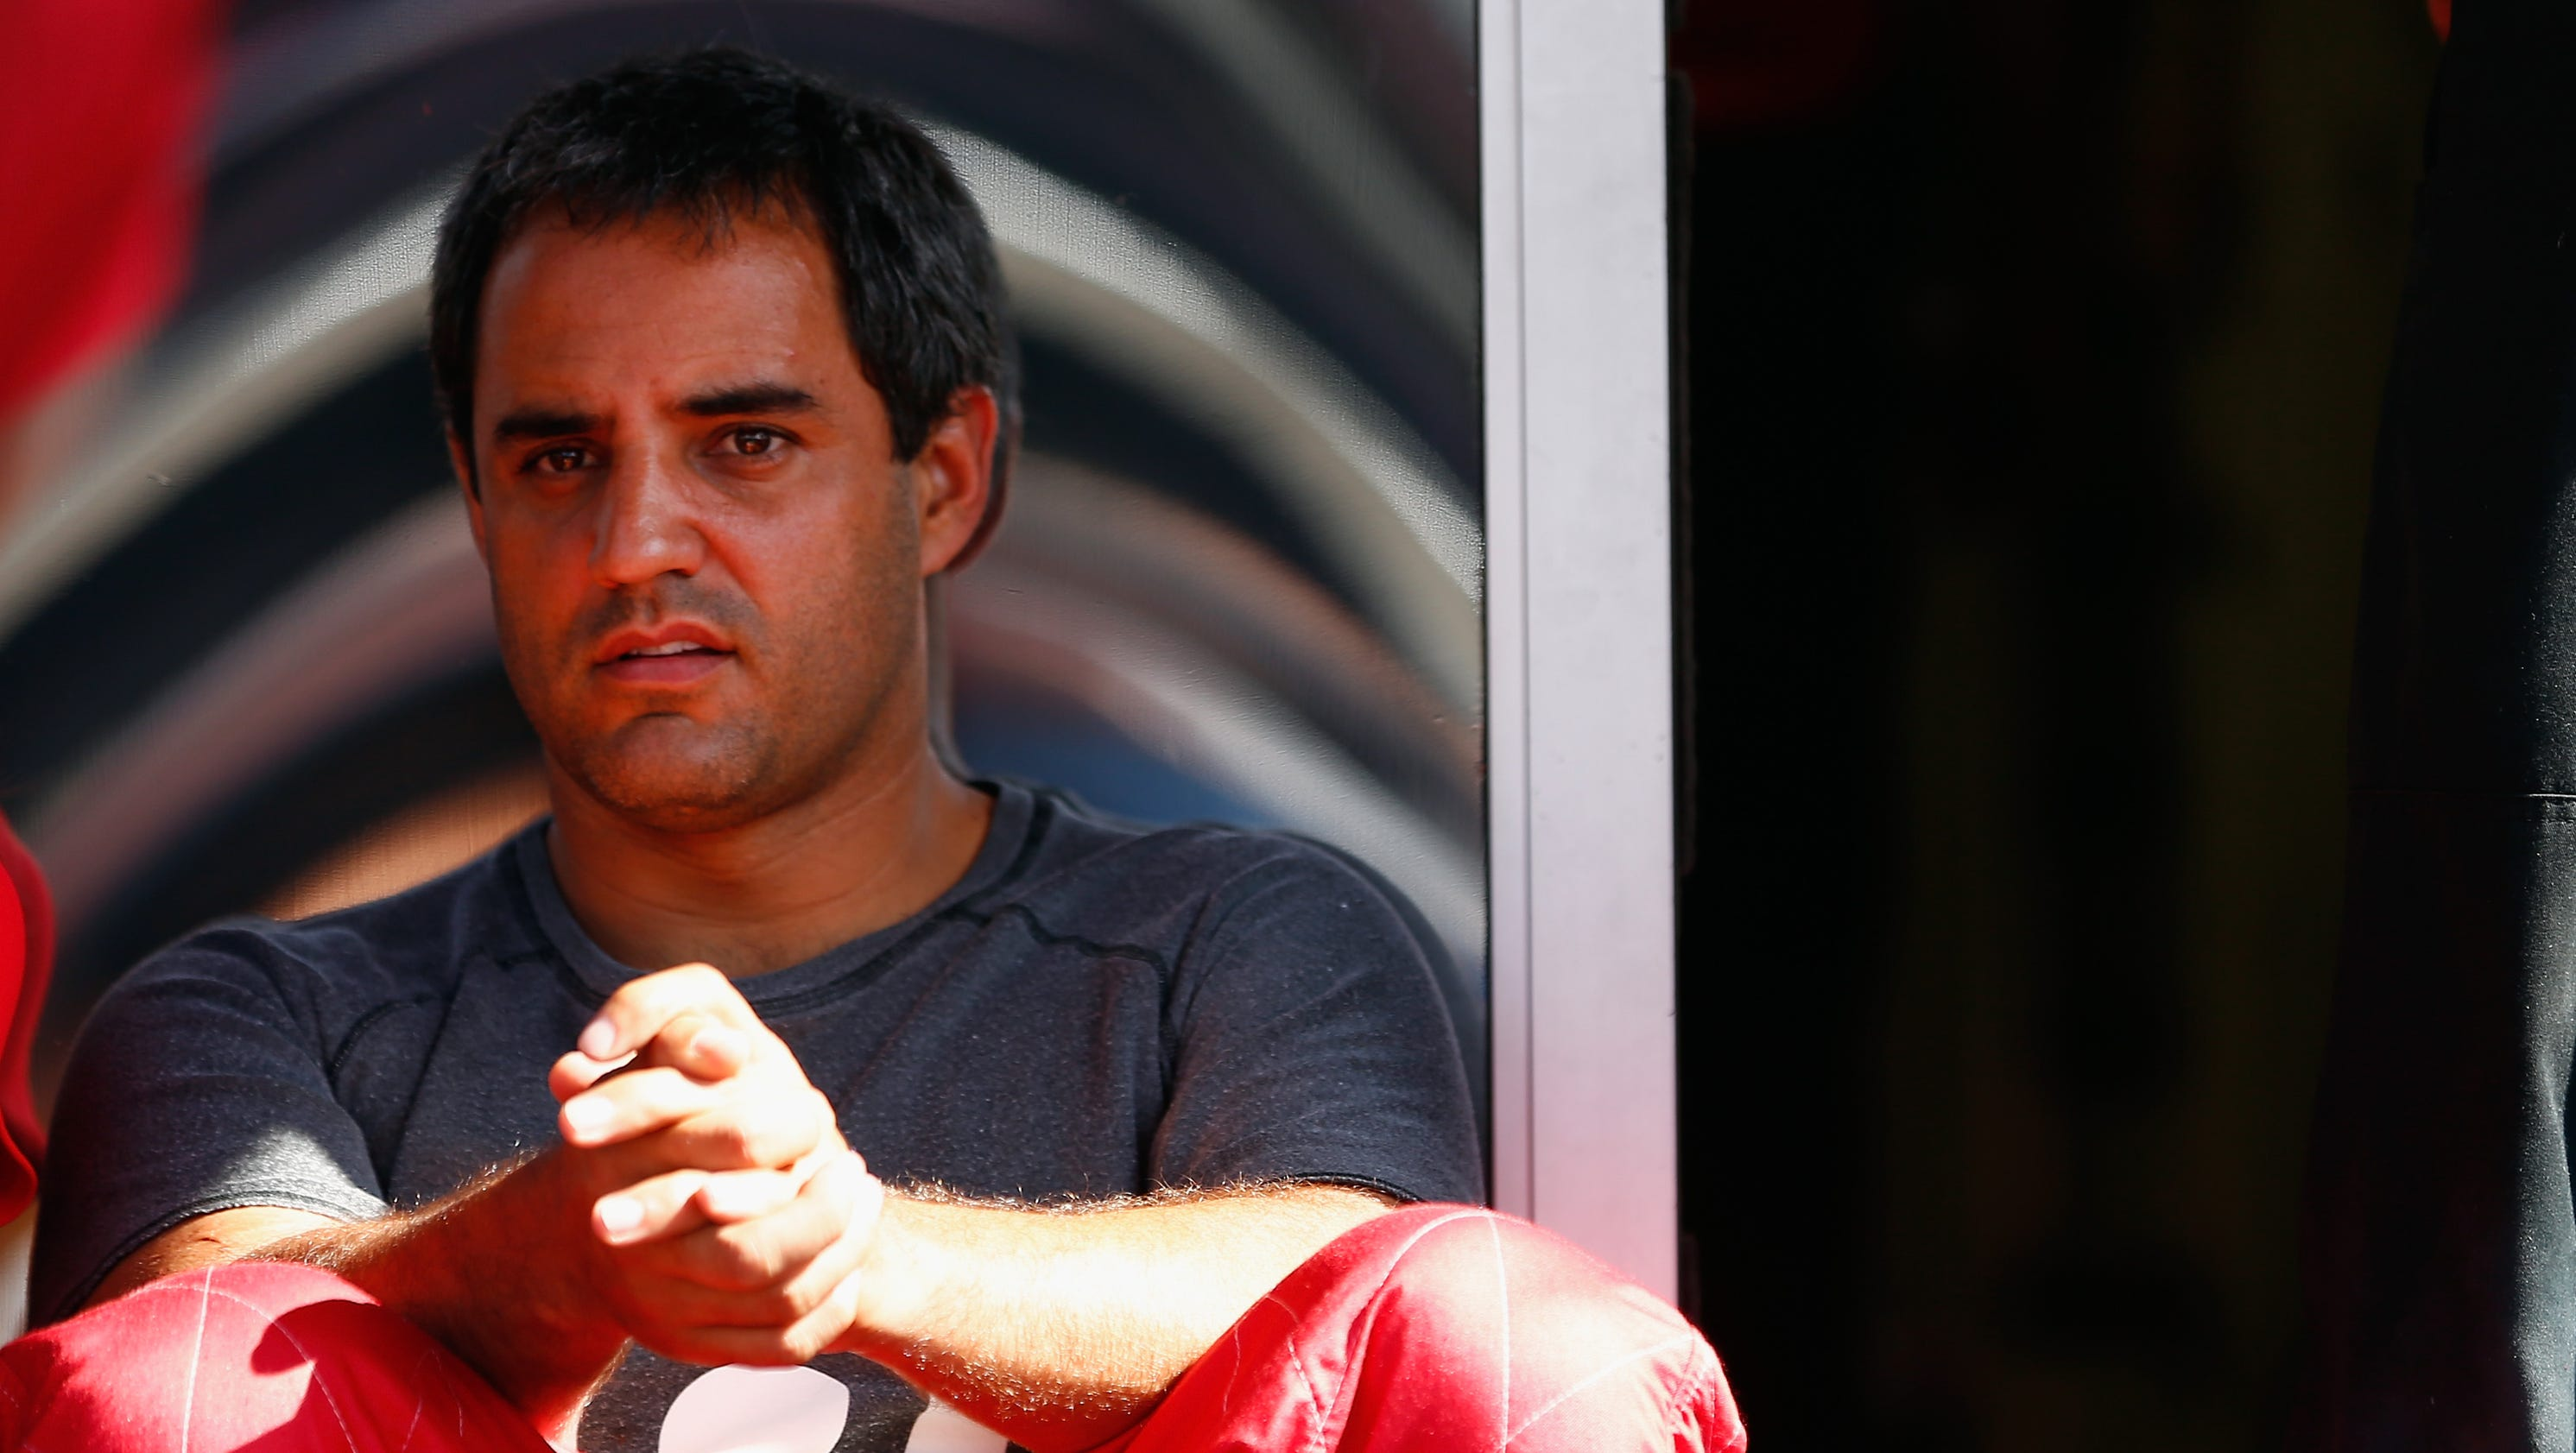 juan pablo montoya excited for return to open wheel racing